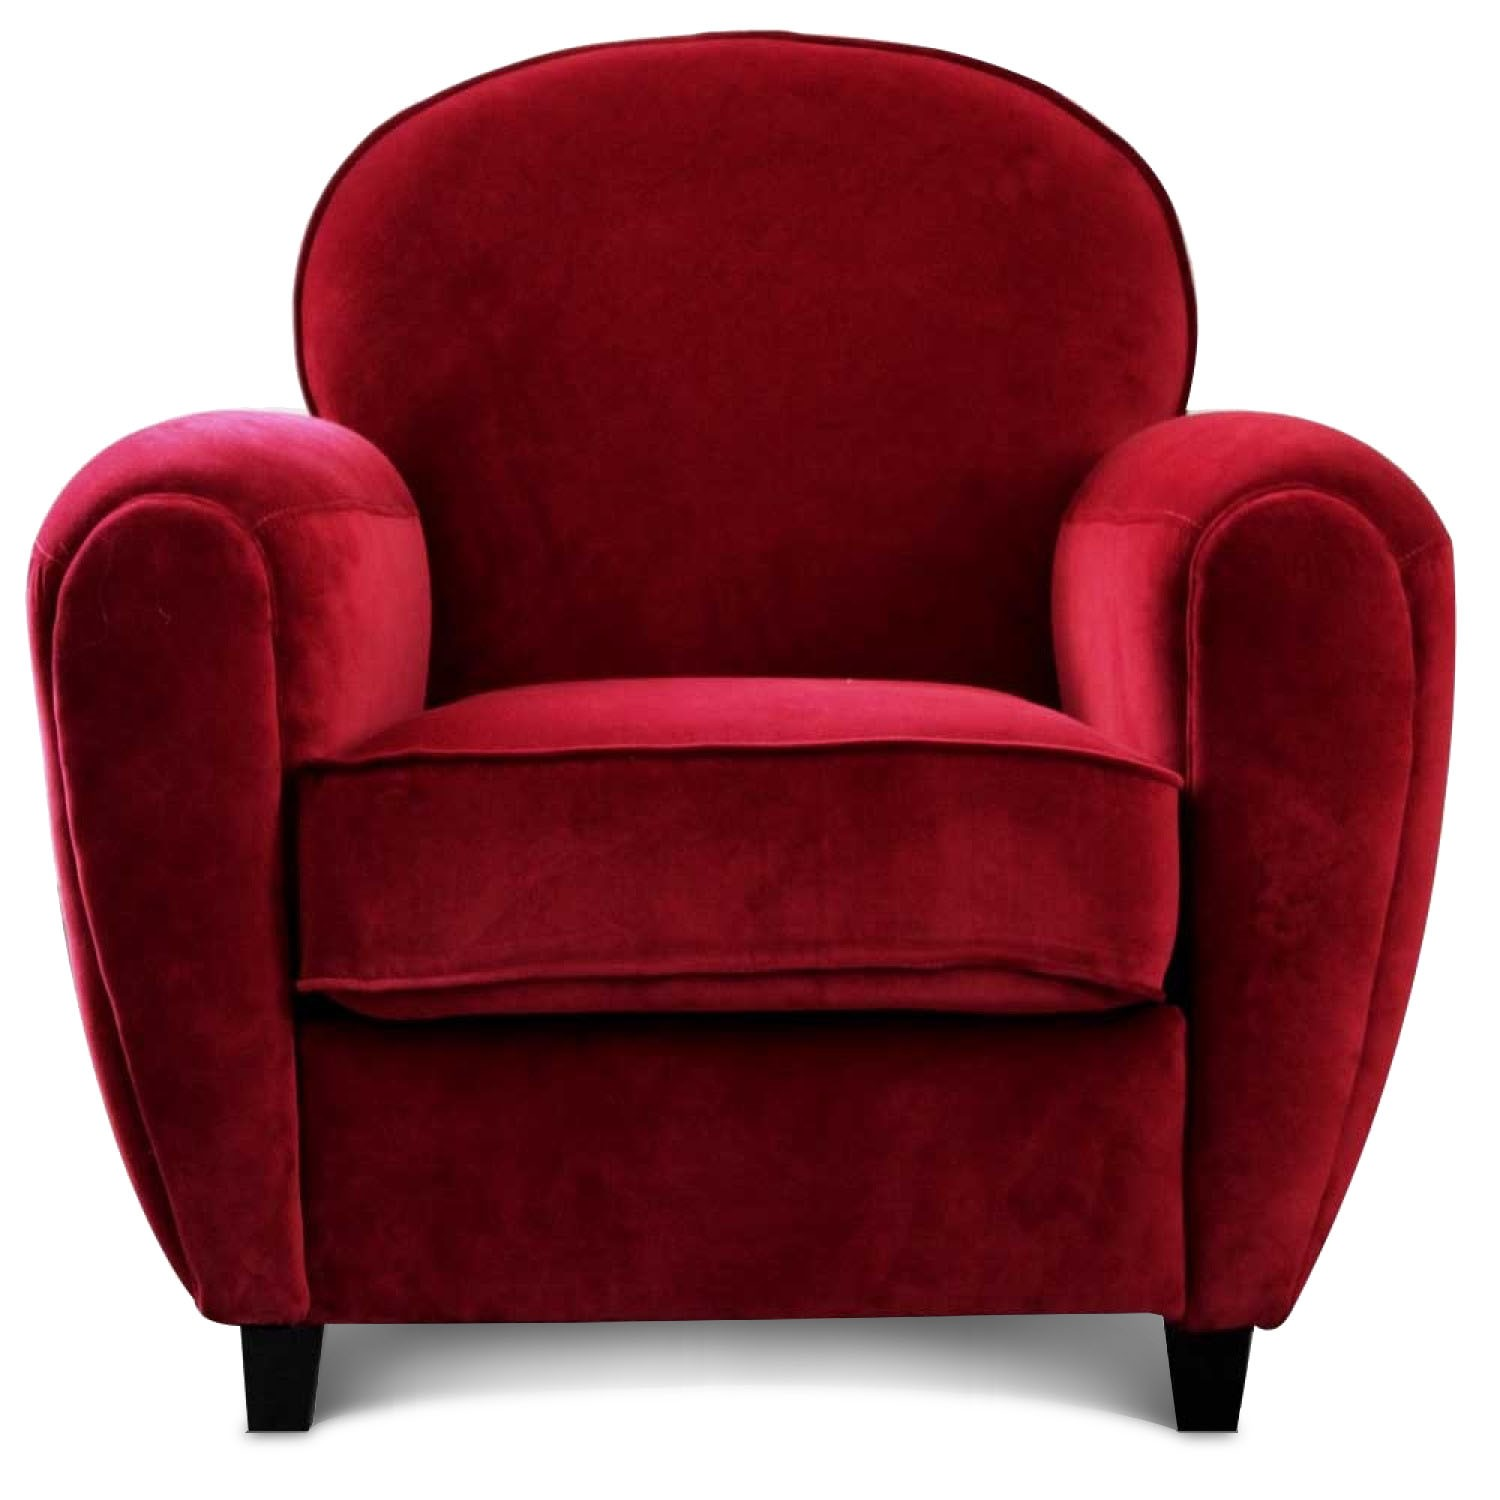 fauteuil club velours rouge cinema demeure et jardin. Black Bedroom Furniture Sets. Home Design Ideas